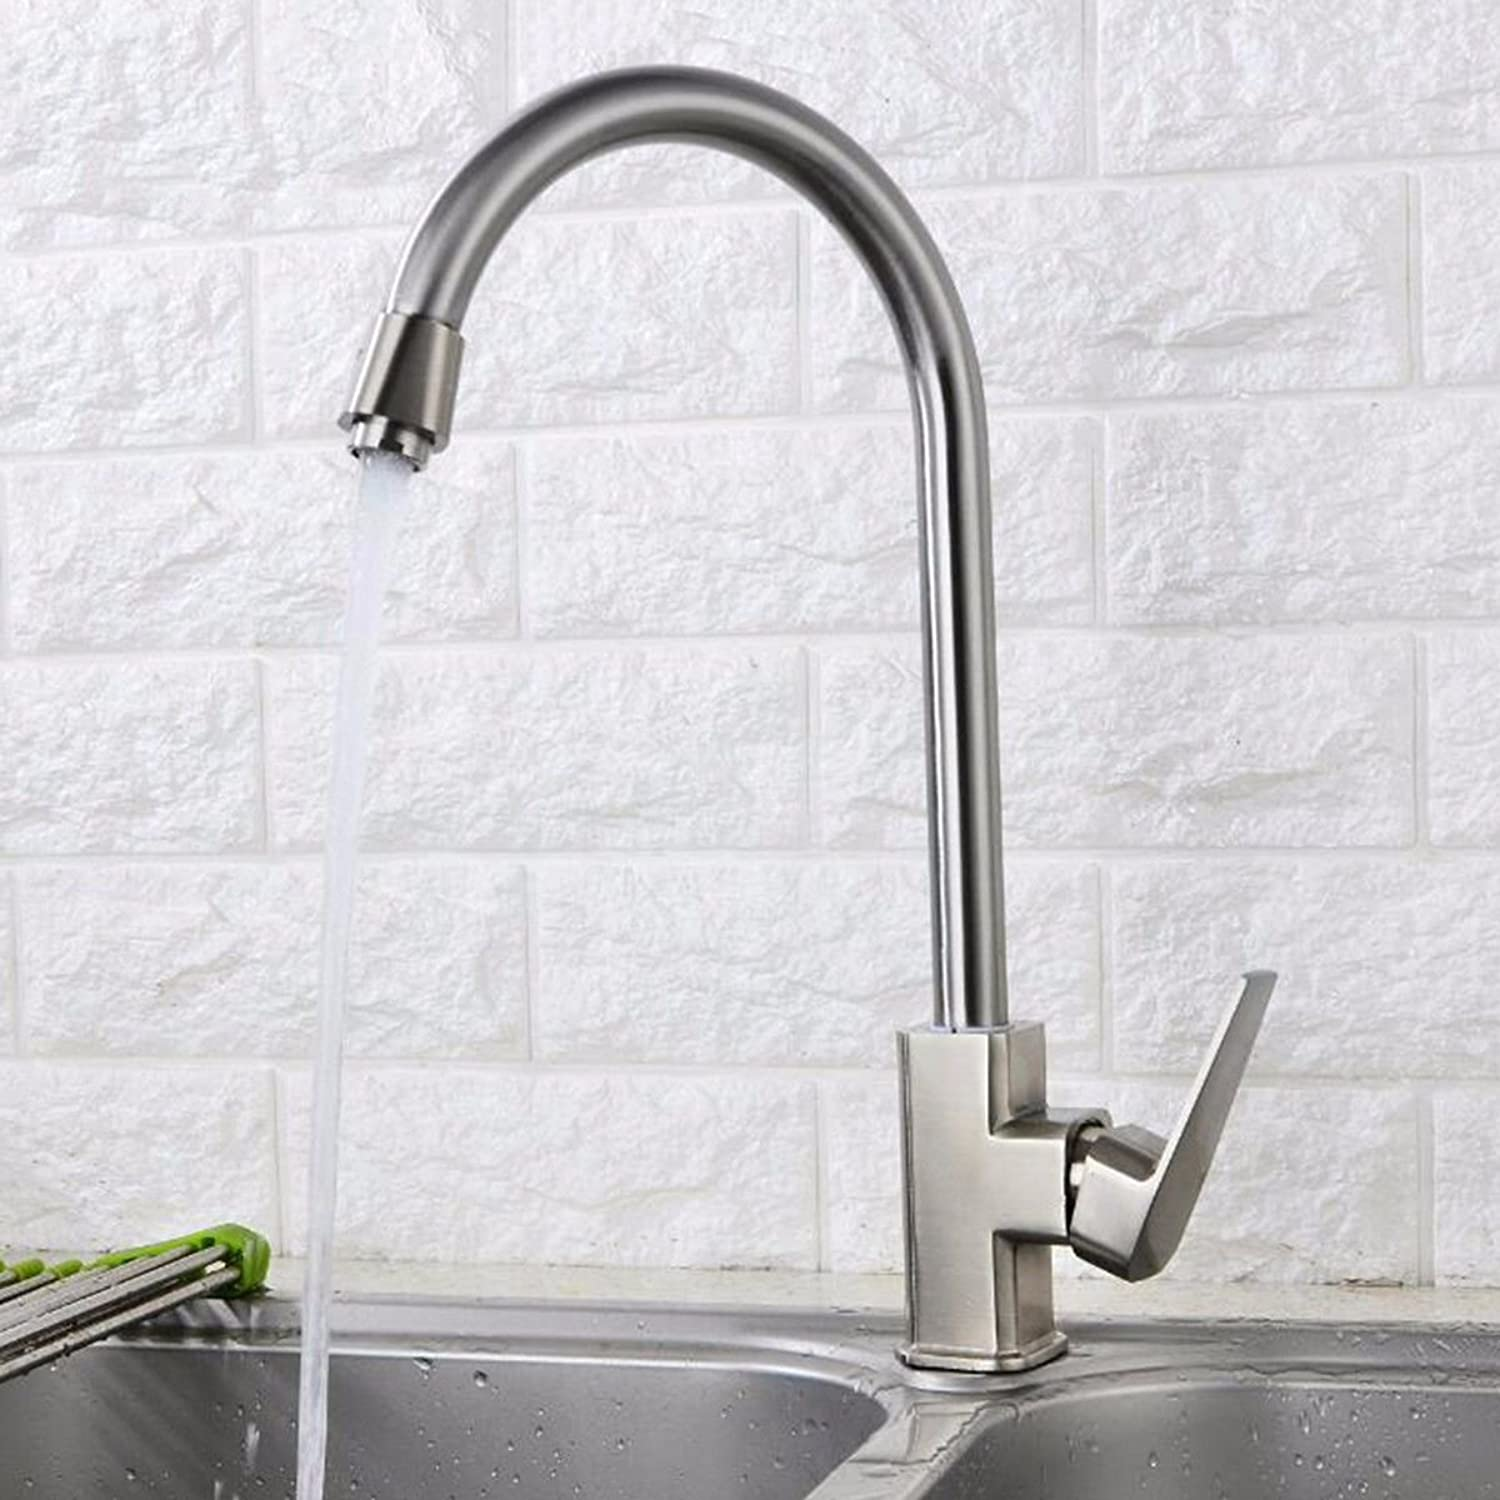 MulFaucet Brushed Square Kitchen Faucet Sink hot and Cold Sink Faucet Copper Valve Body redatable Faucet